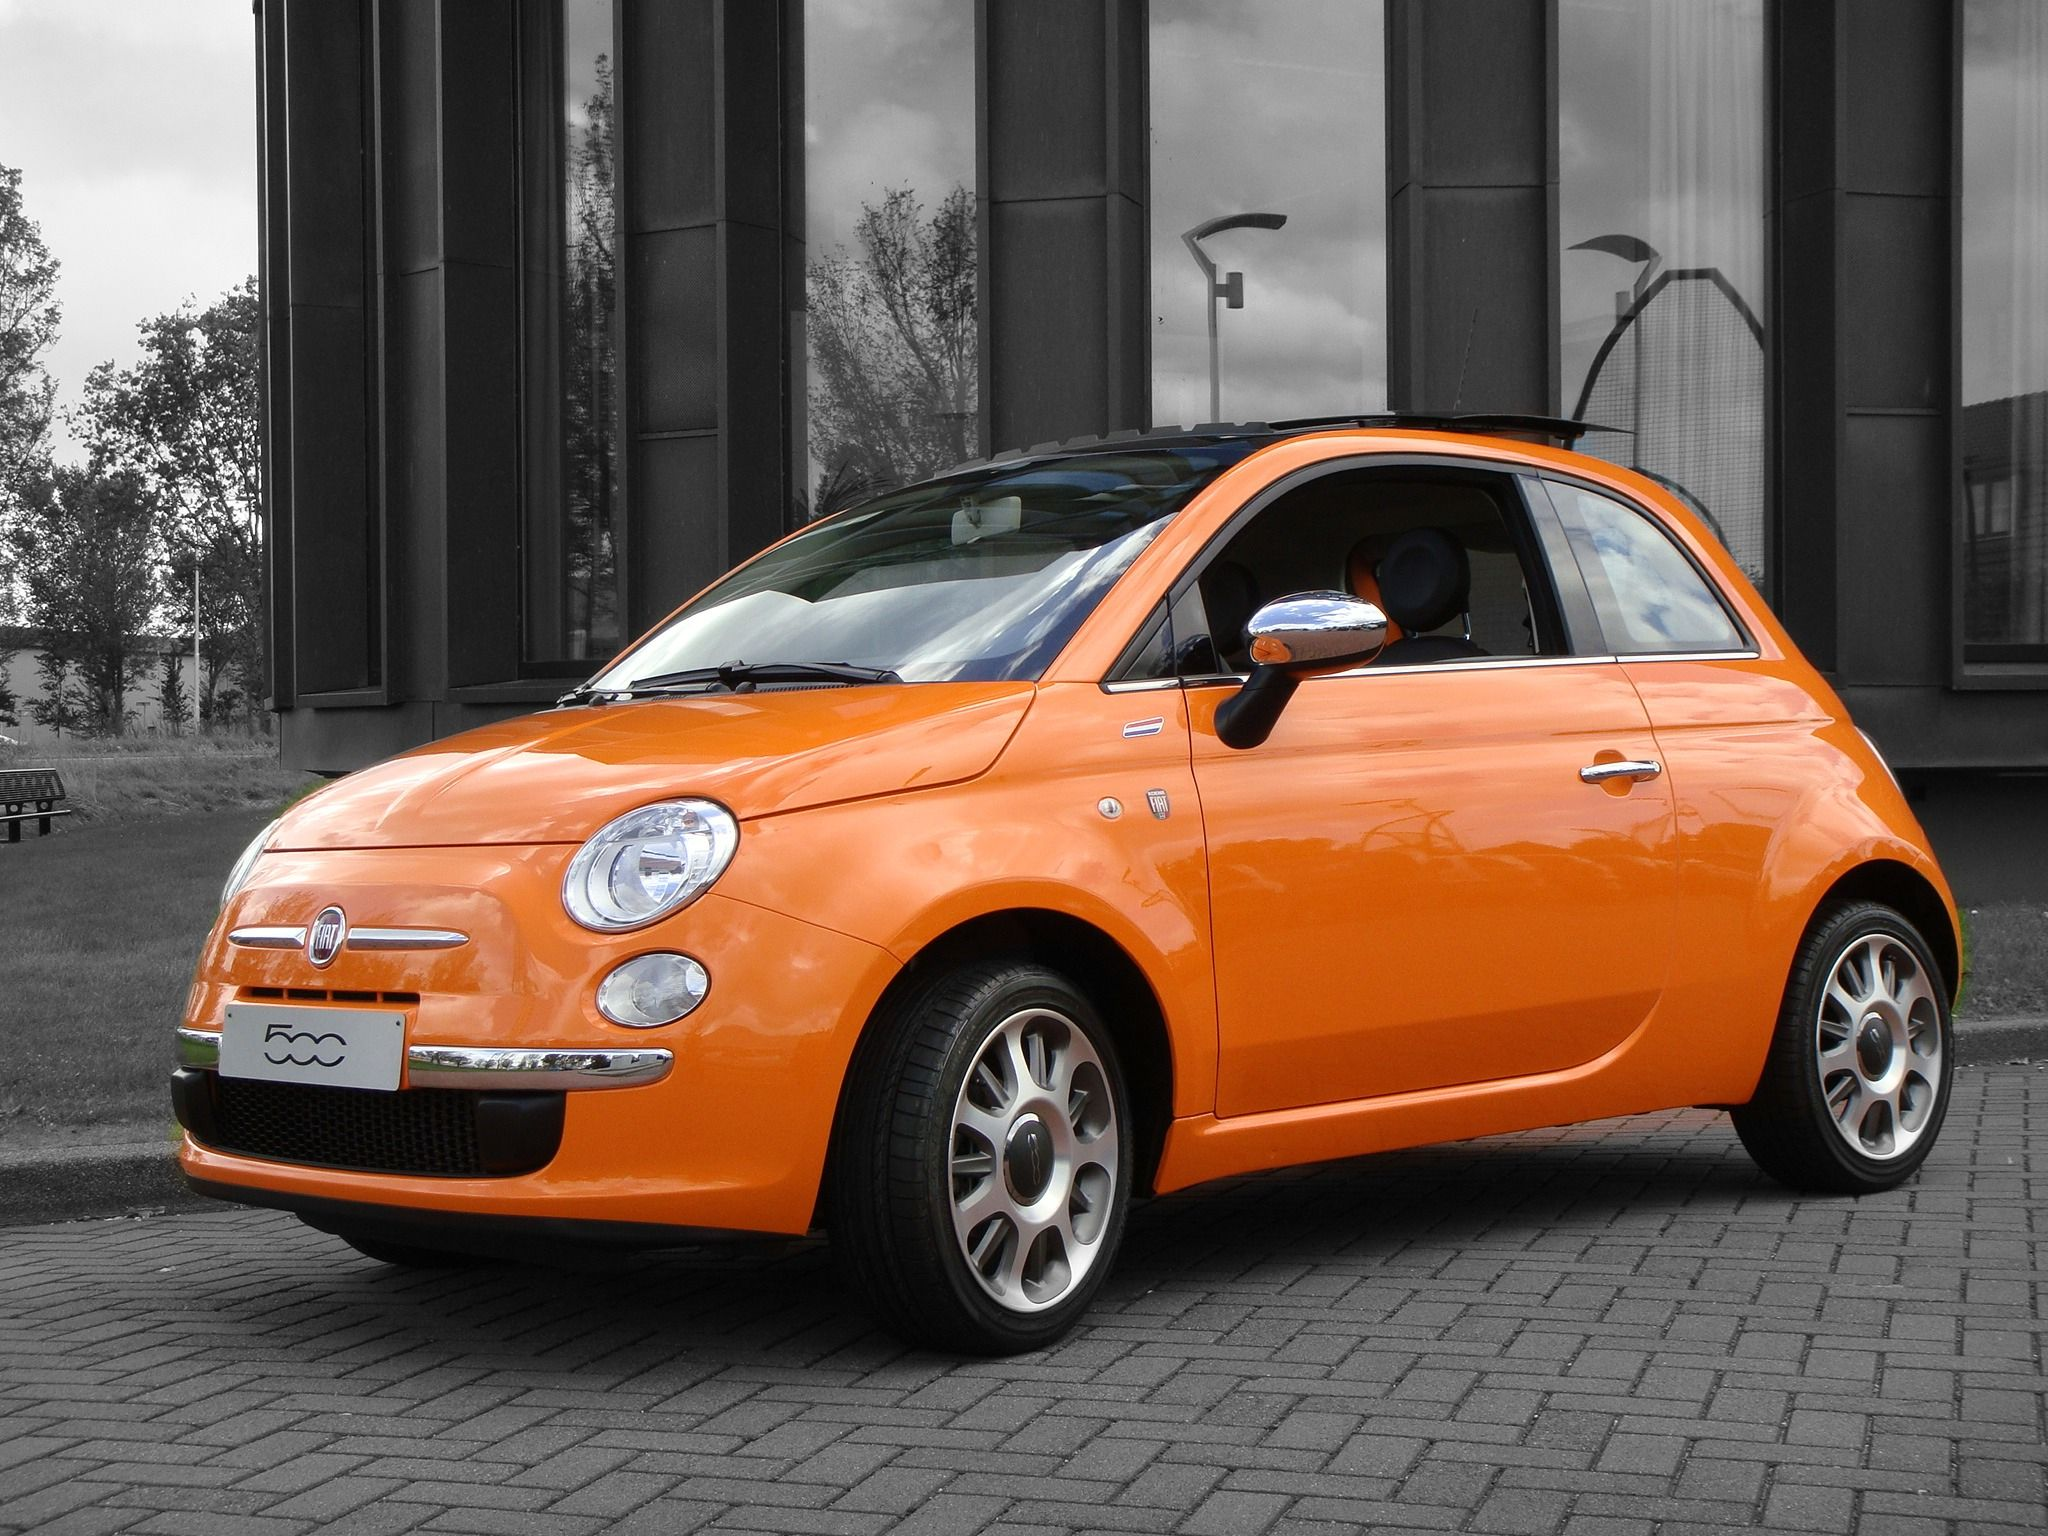 Souvent Fiat 500 orange : specially made for the Netherlands | Dream car  IE45